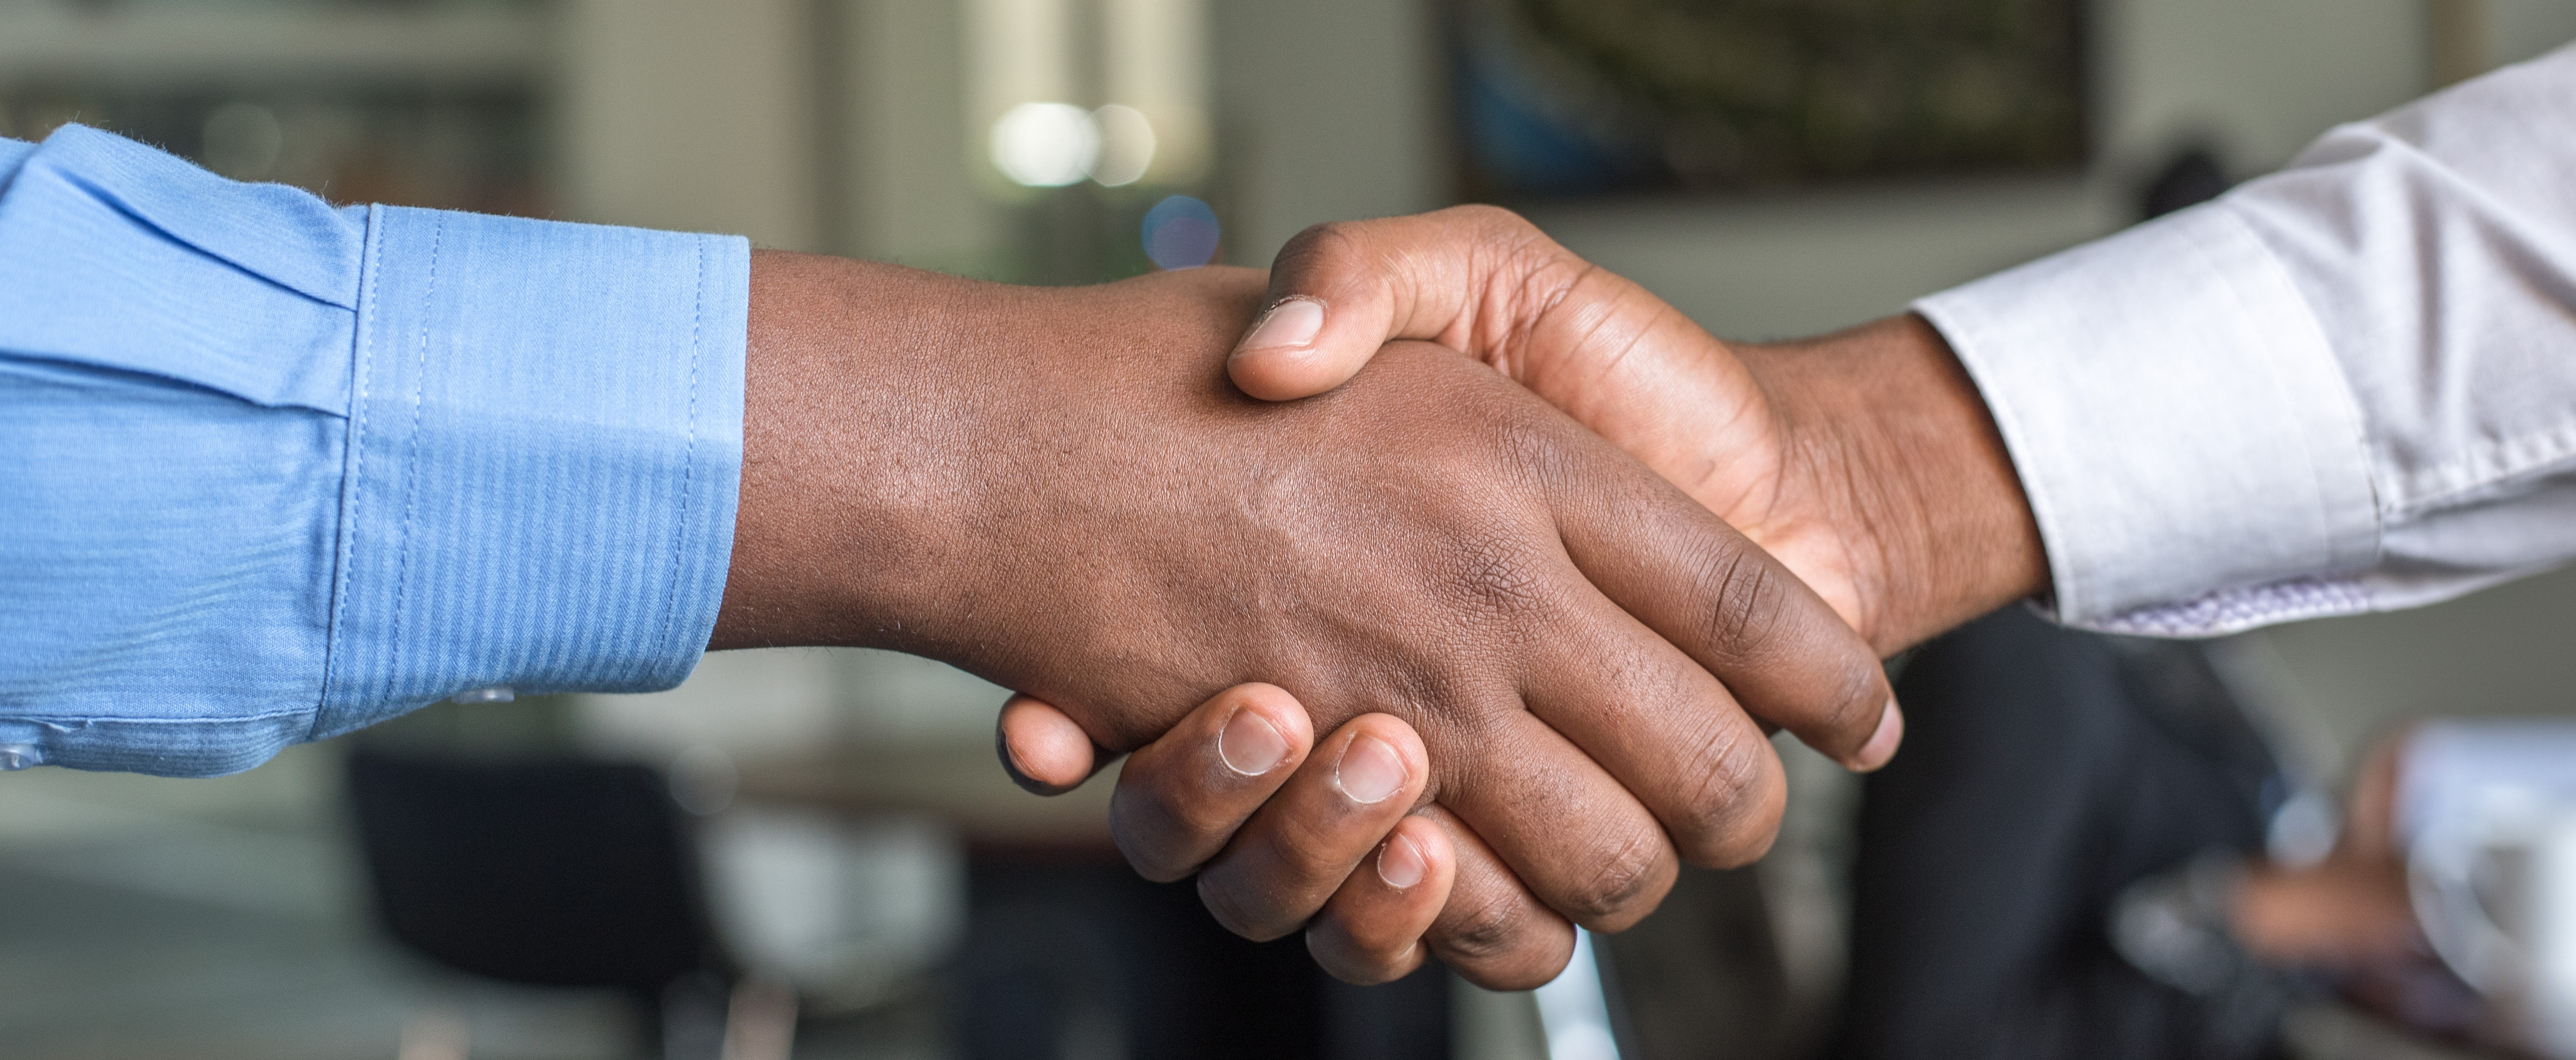 handshake banner - cytonn-photography-604681-unsplash